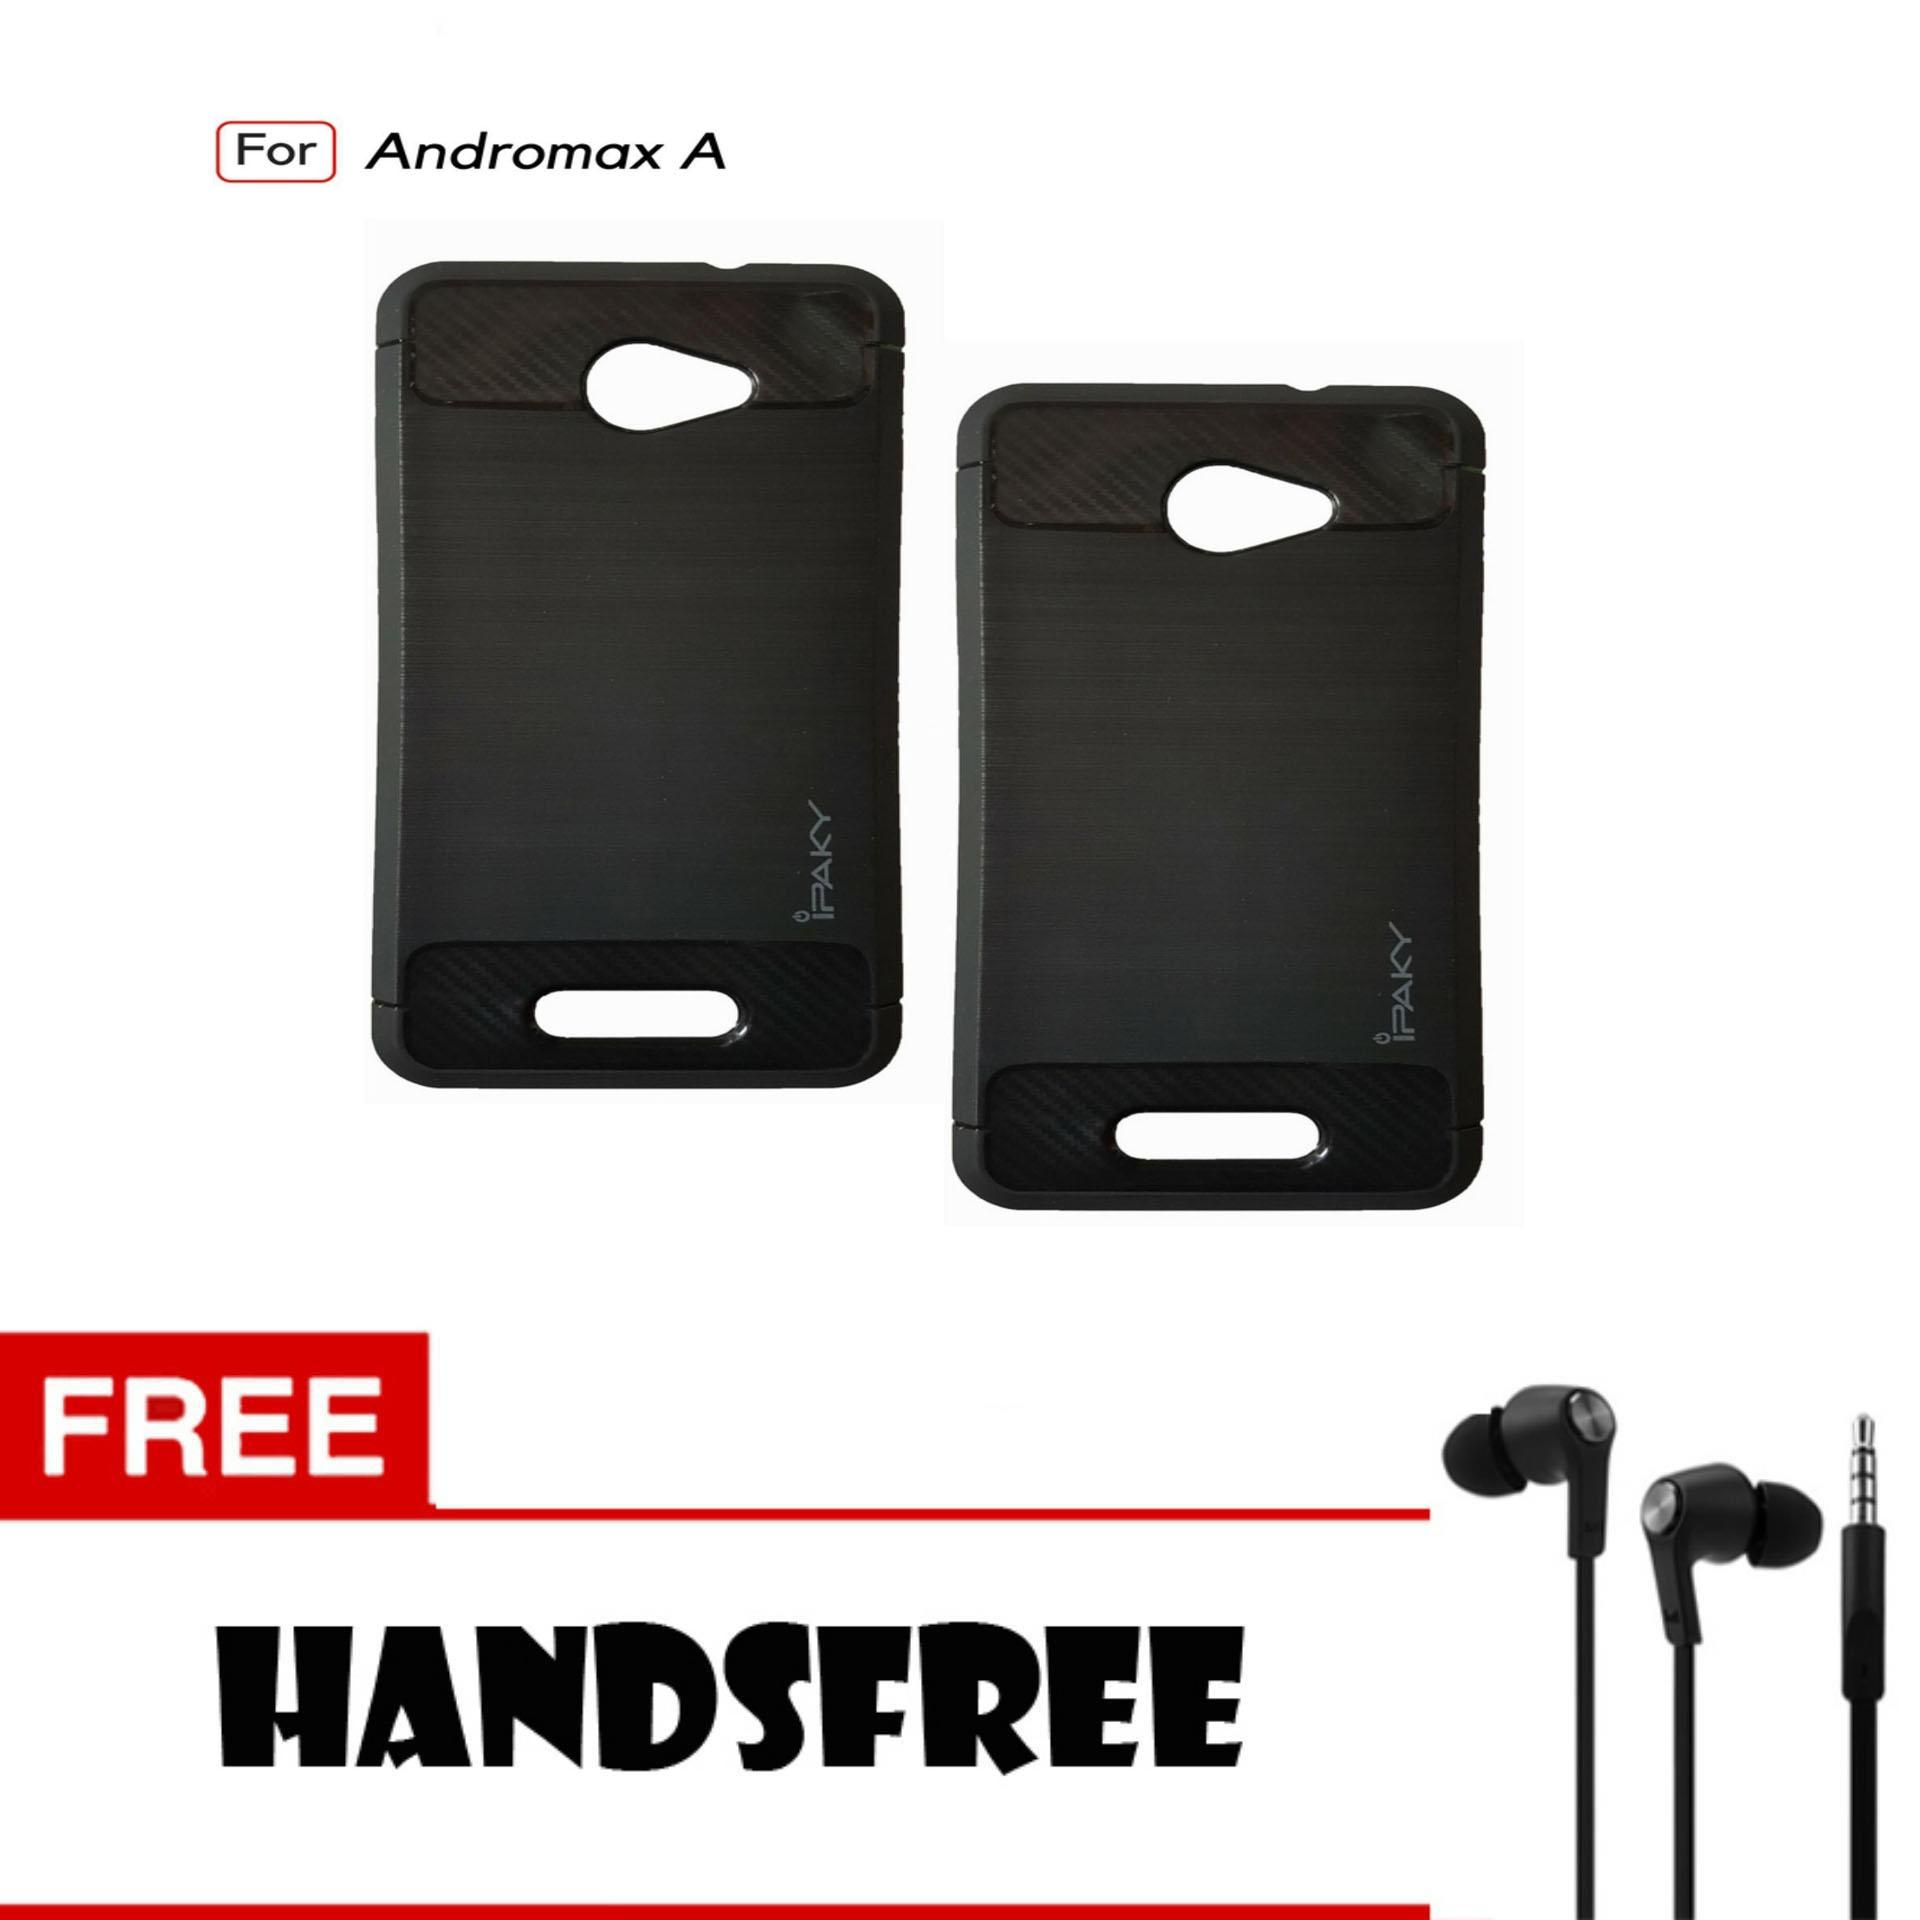 Kenzoe Premium Quality Carbon Shockproof Hybrid Case For Andromax A - Black FREE Handsfree